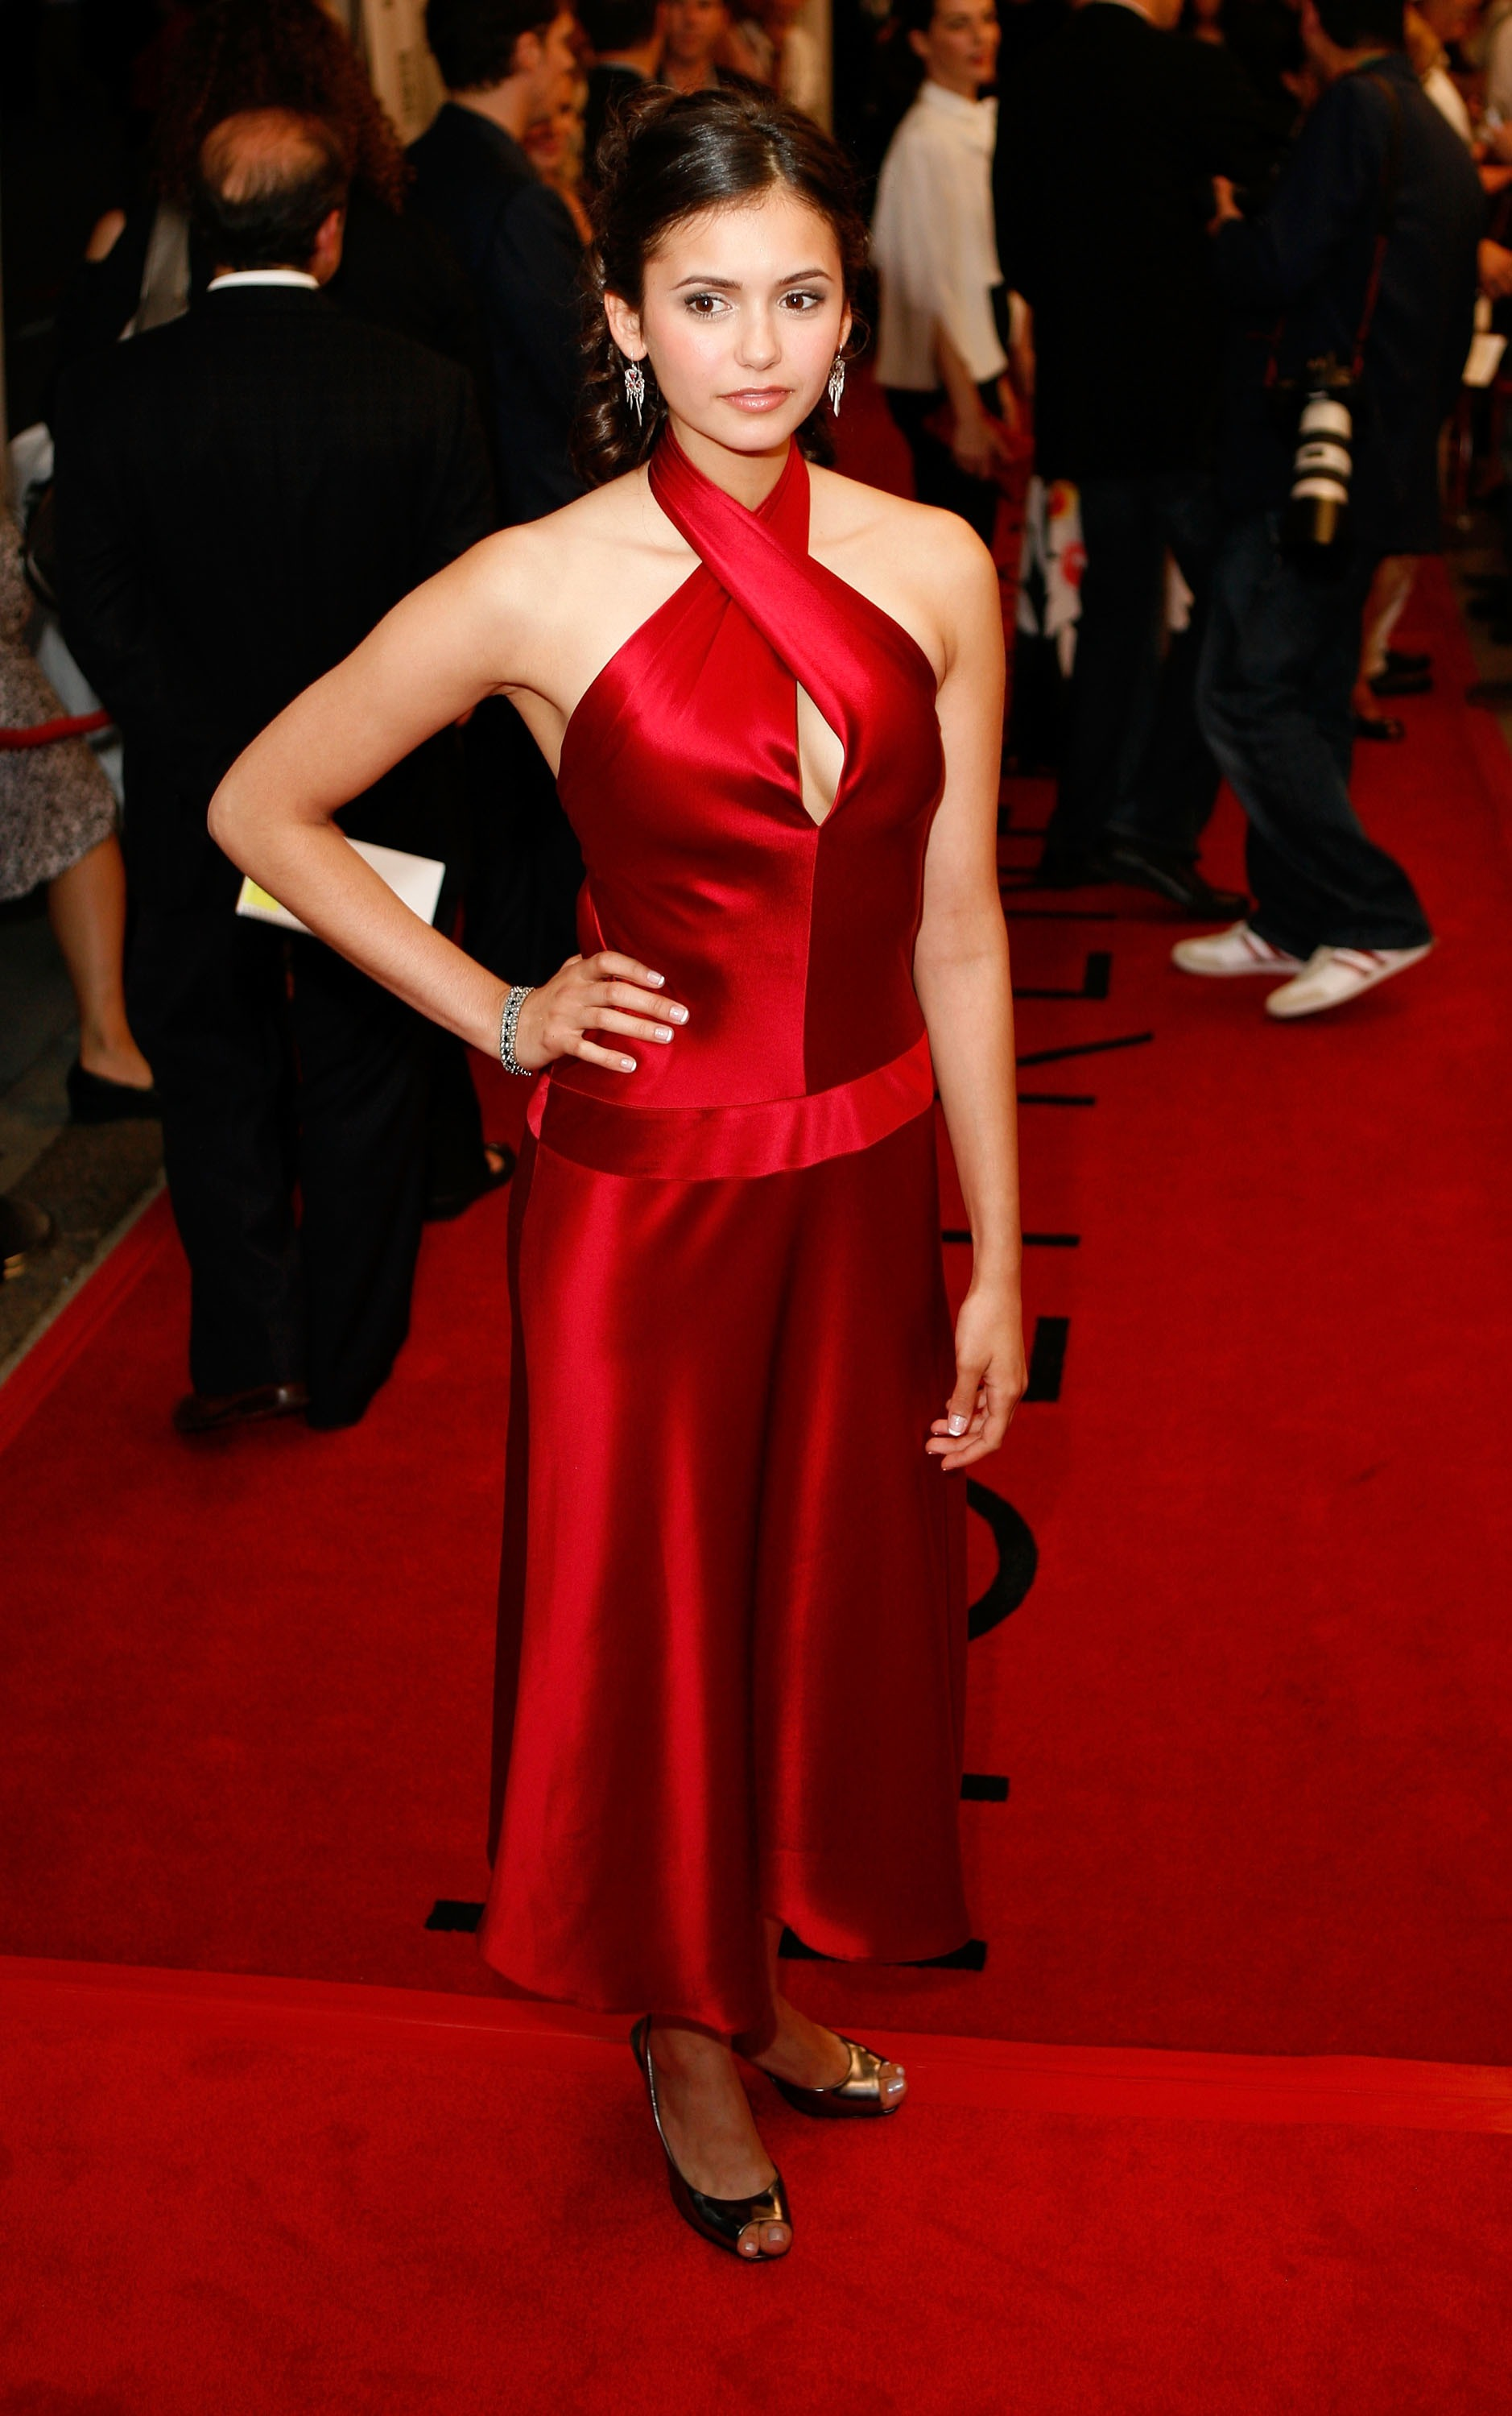 Nina chose a silky red halter dress for a gala in September 2007.